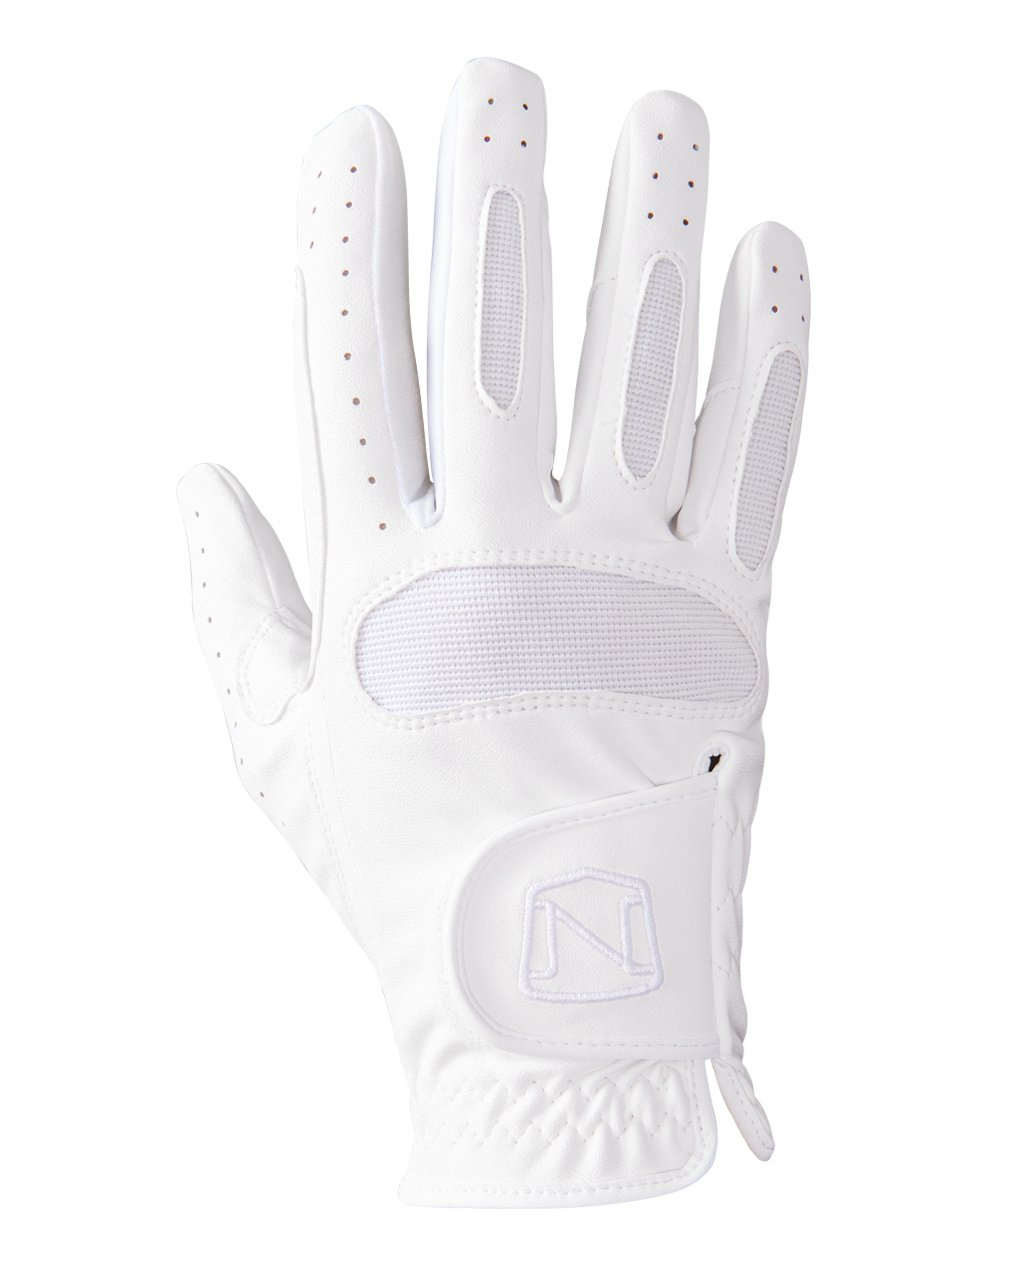 Ready To Ride Glove Noble Outfitters